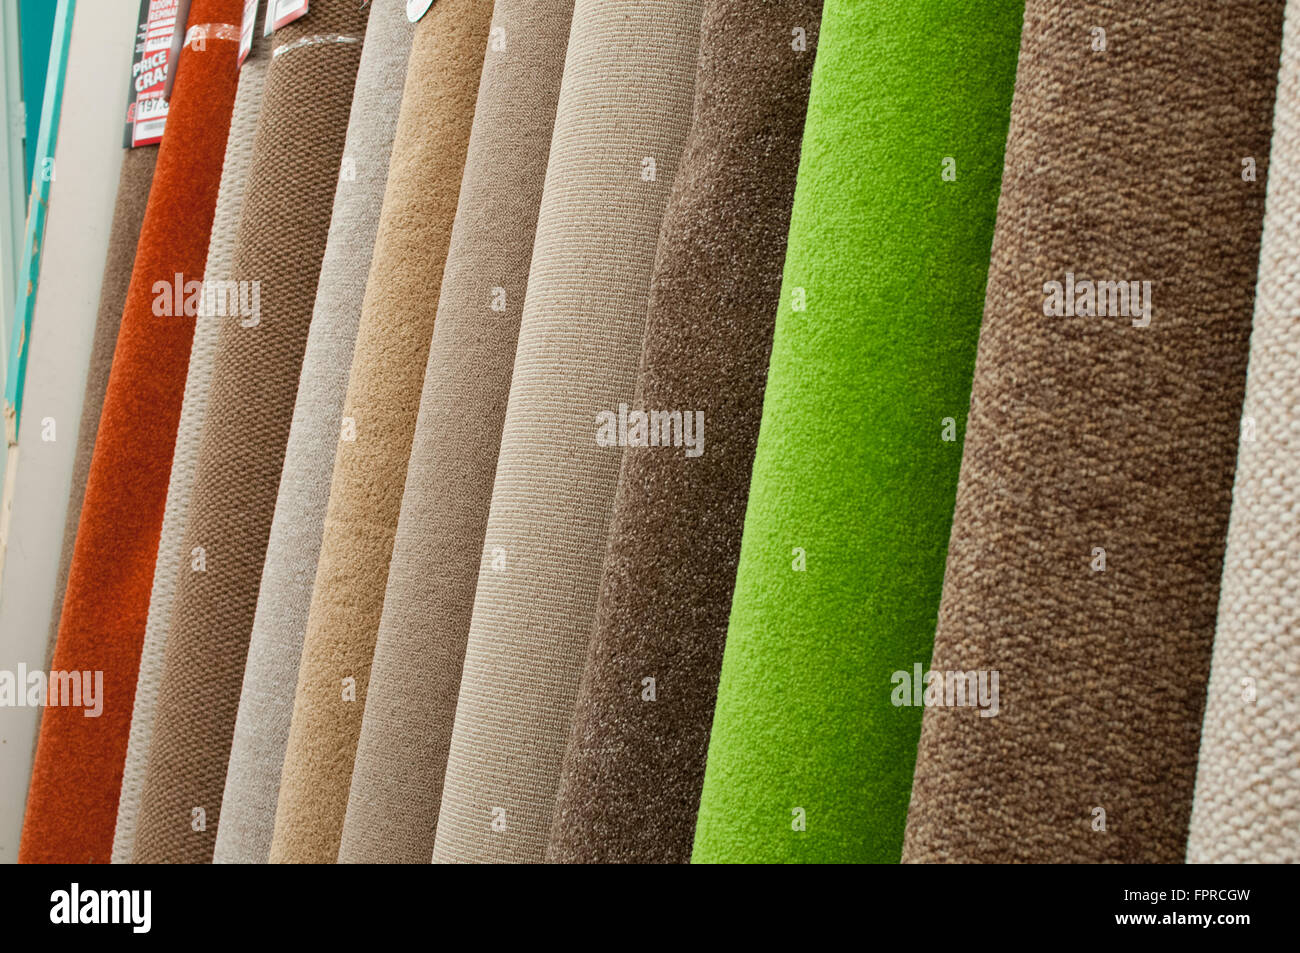 CarpetRight retail store products on display. - Stock Image